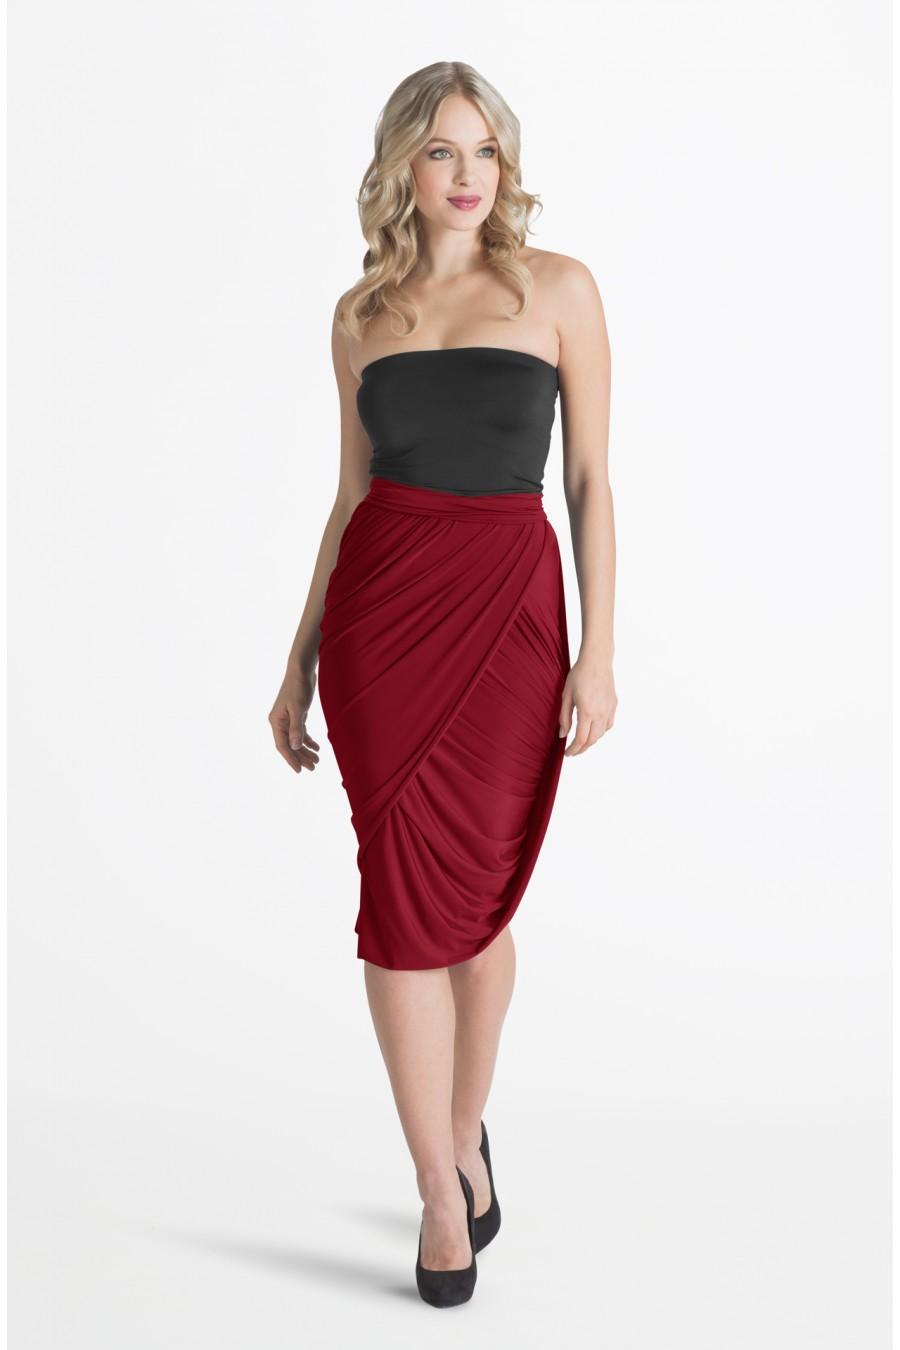 Plus Size Red Midi Dress : Fashion Week Collections